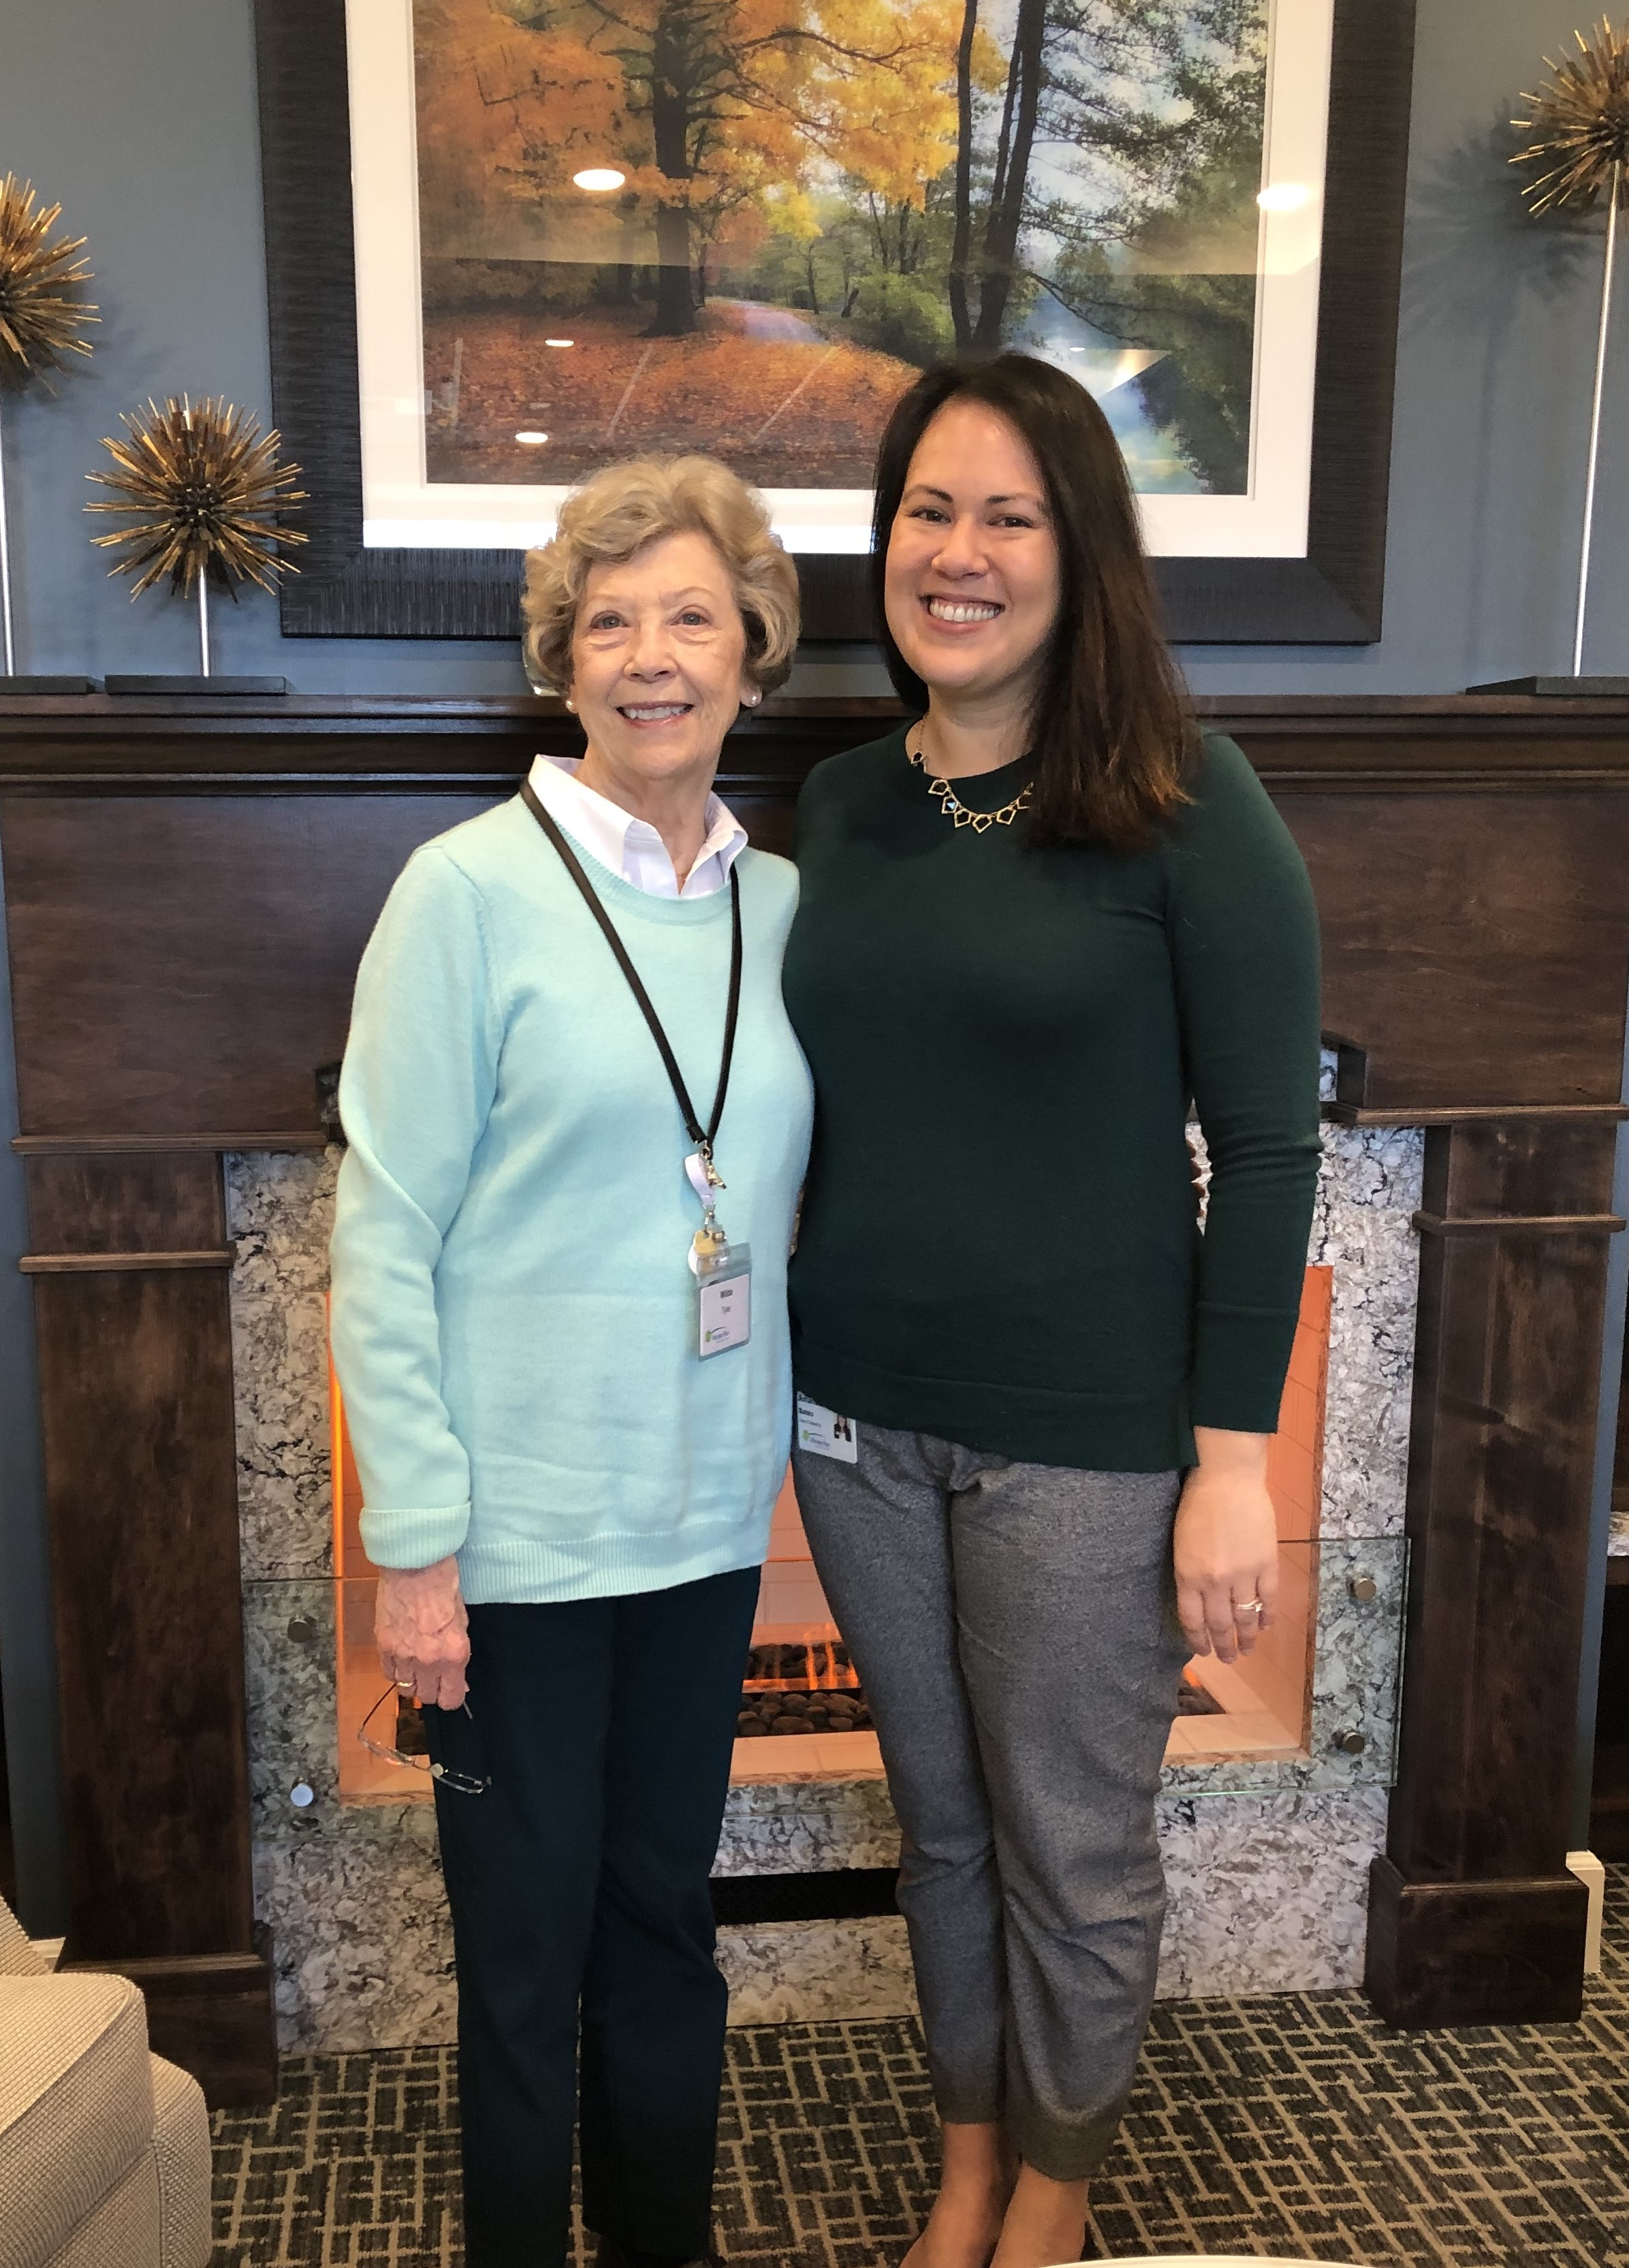 Wilda Tyler, a resident of Windsor Run, and Amanda Bates, personal moving consultant, are pictured together in the community's clubhouse.